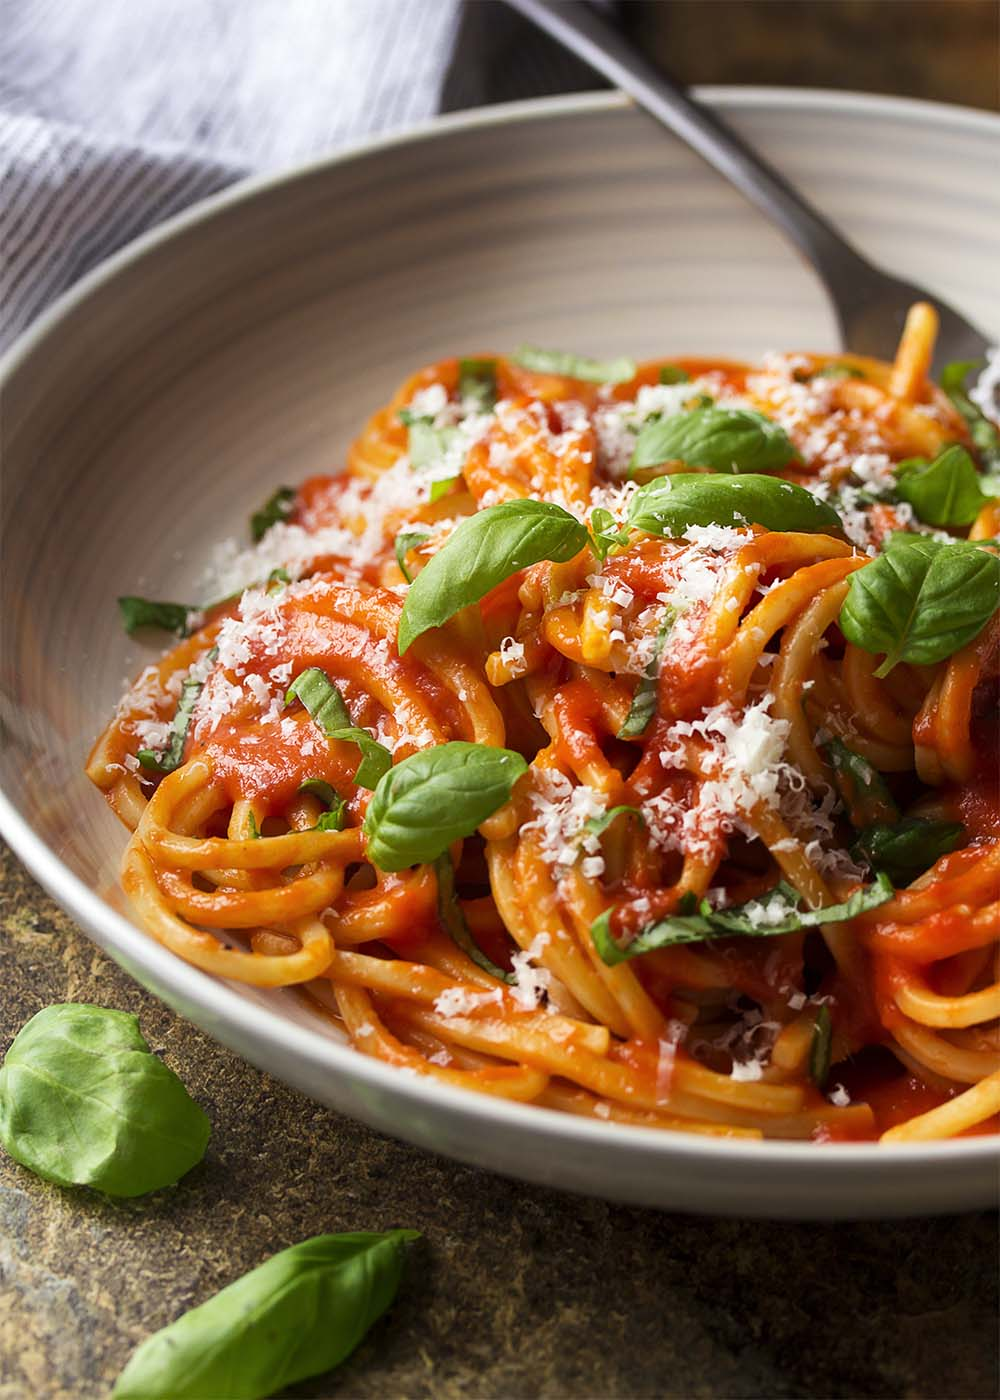 A bowl of pasta al pomodoro showing thick spaghetti topped with tomato sauce.